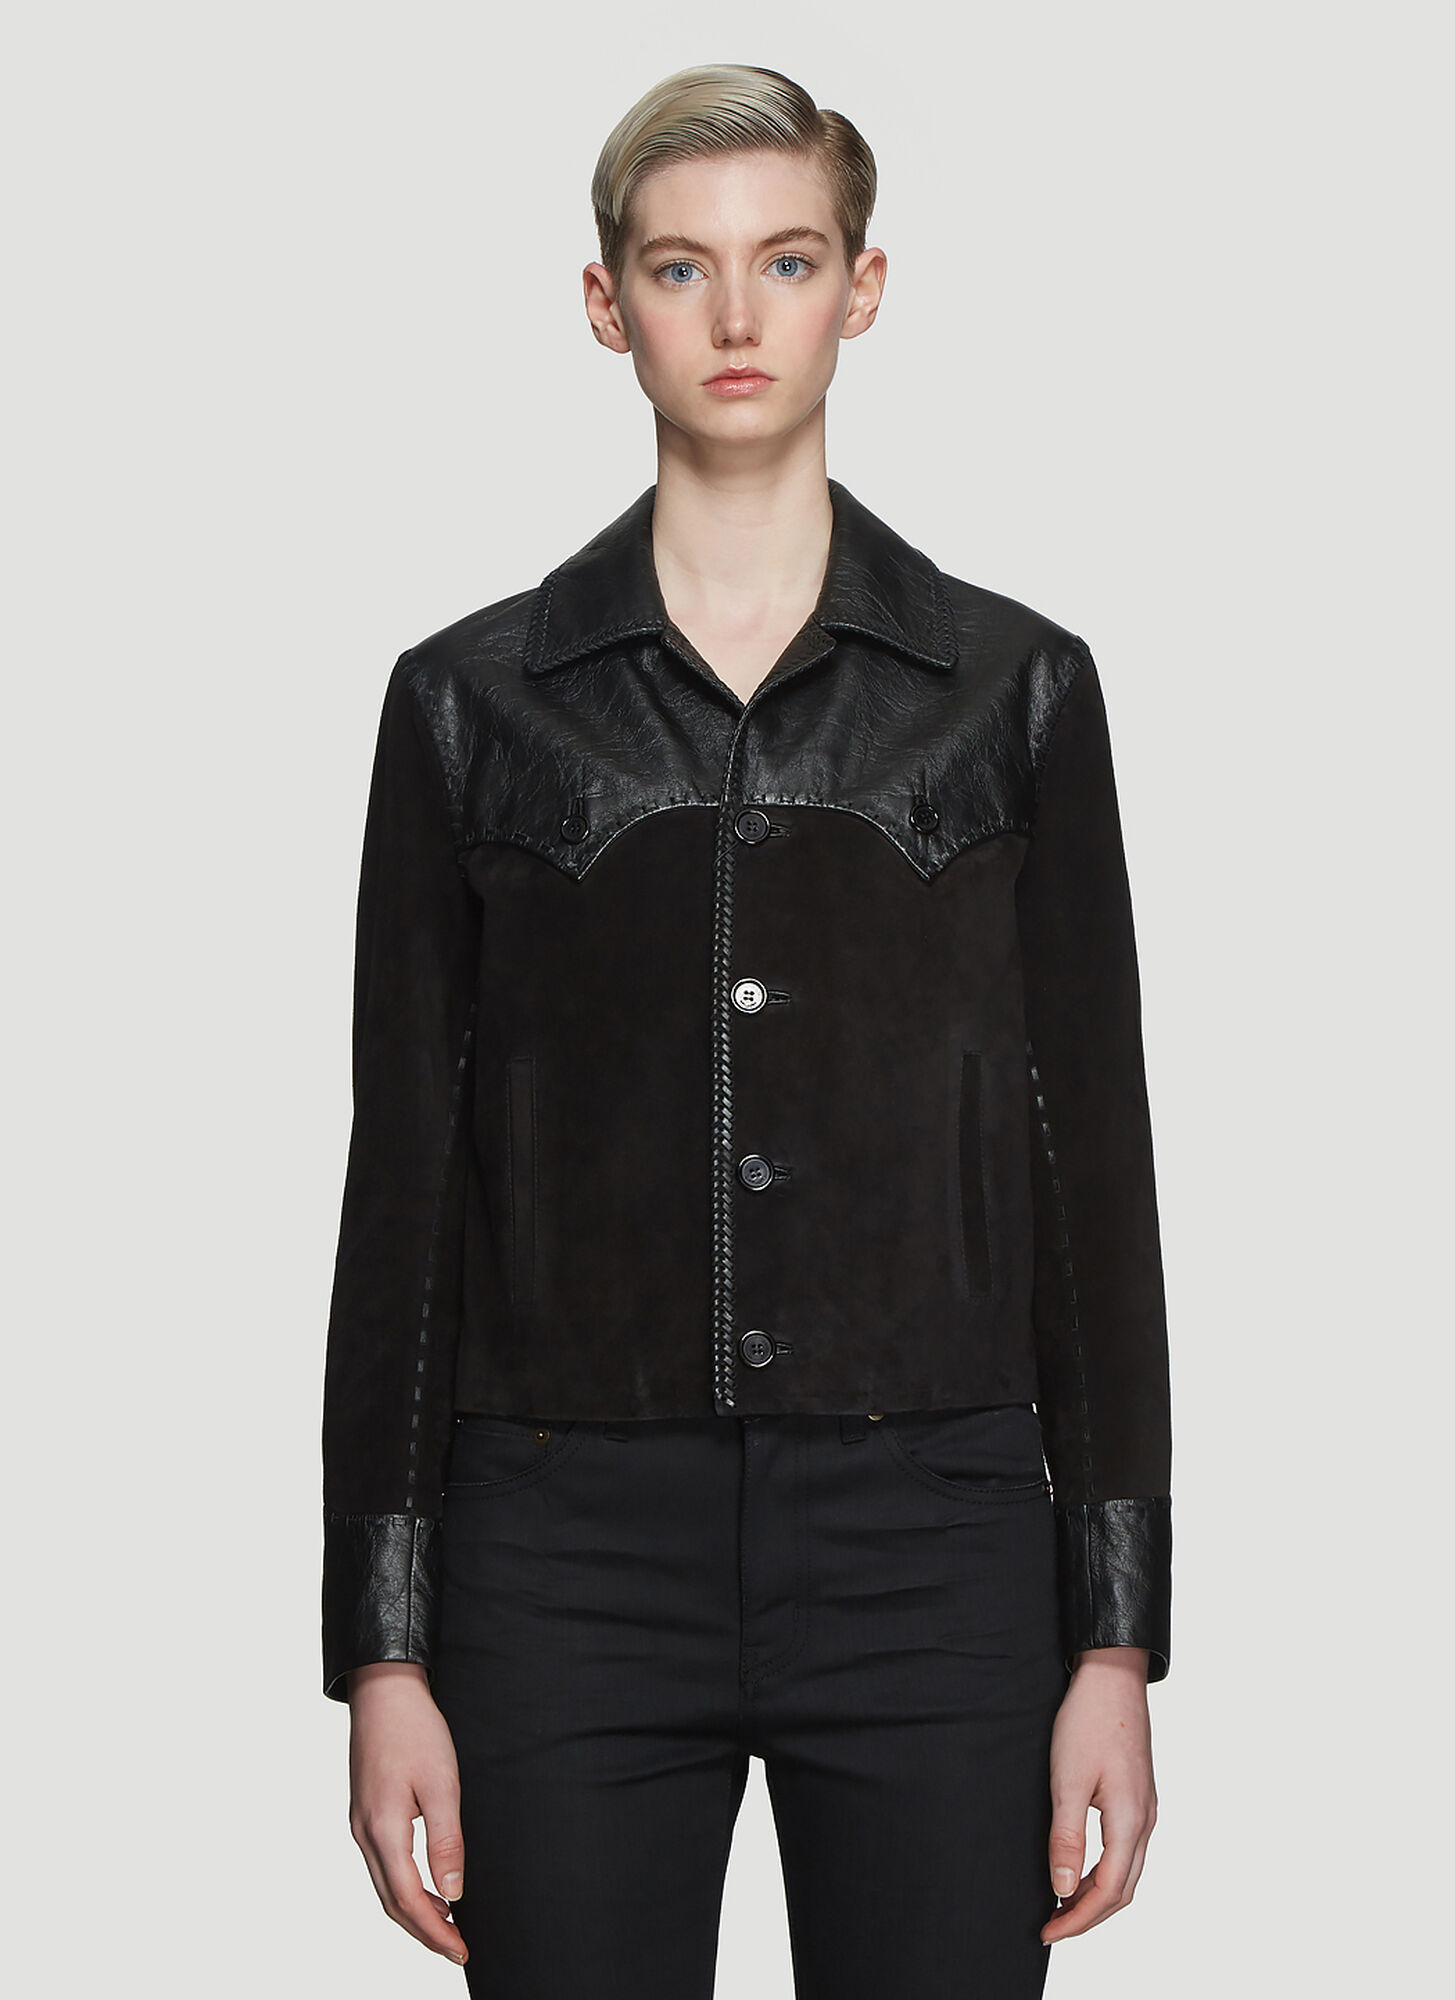 Saint Laurent Western Style Jacket in Black